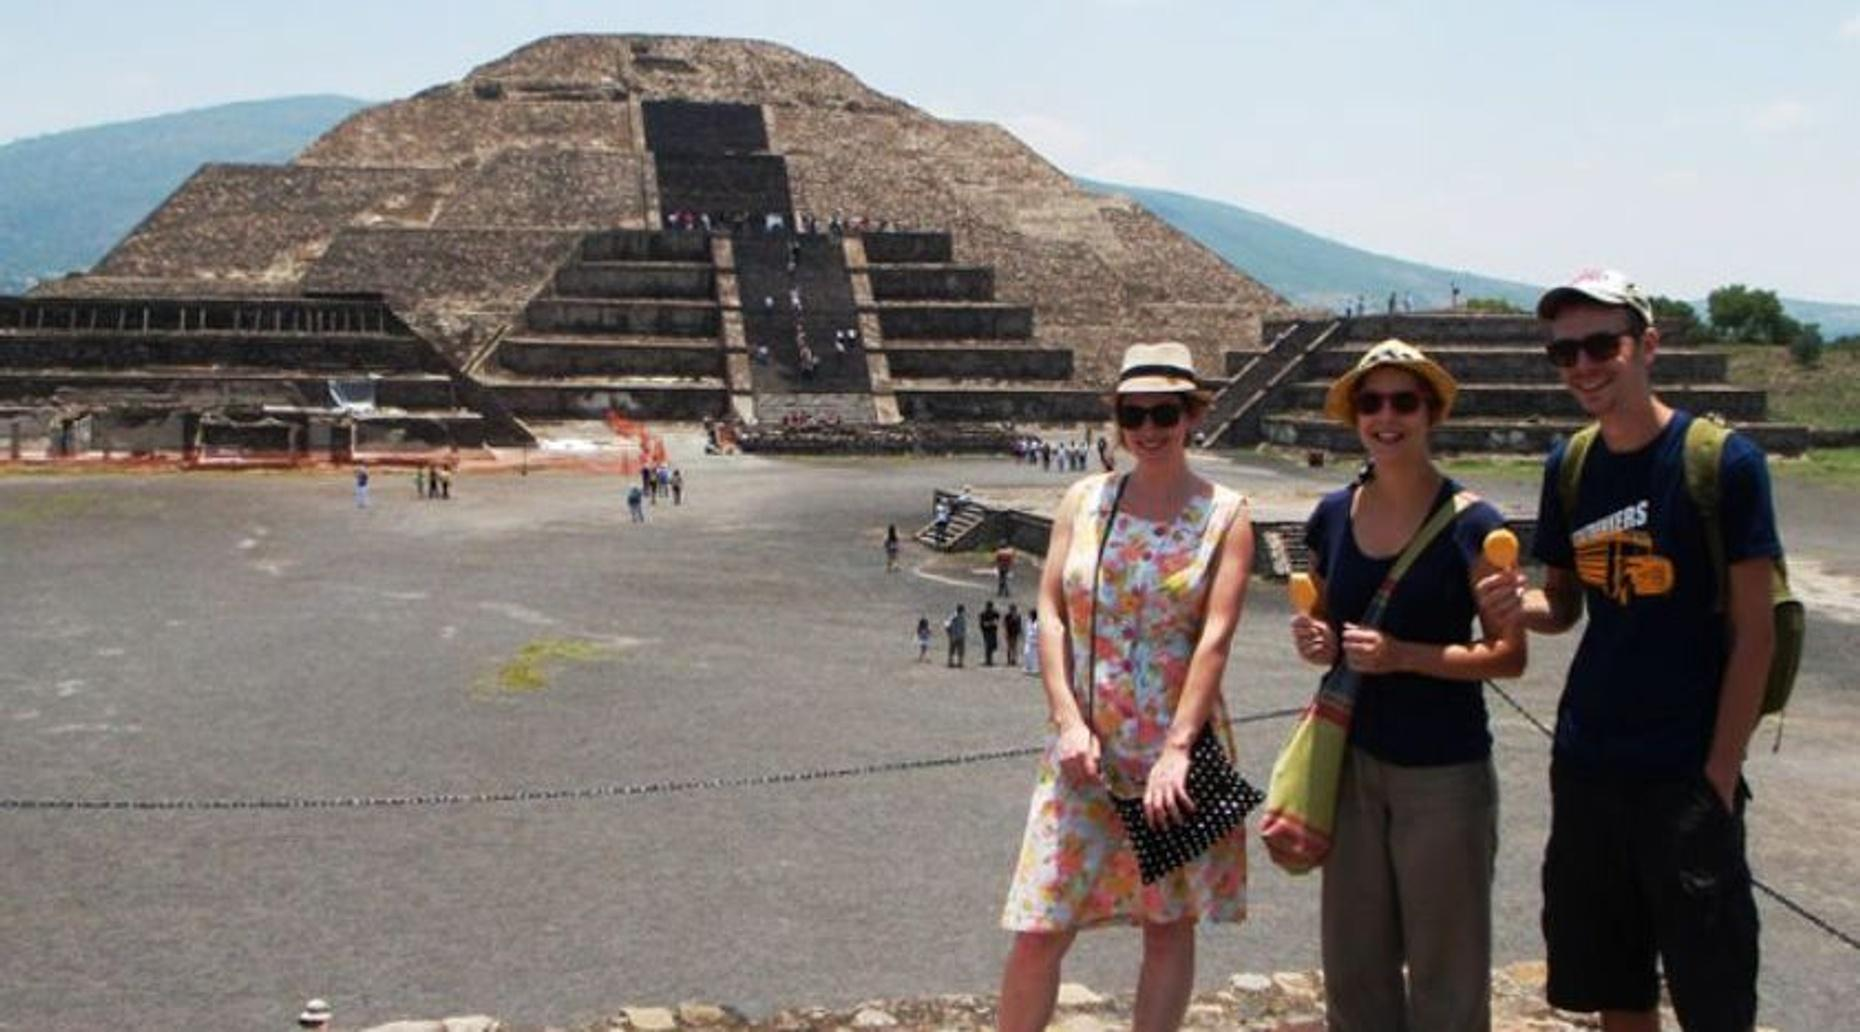 Teotihuacan Pyramids & Temples Tour